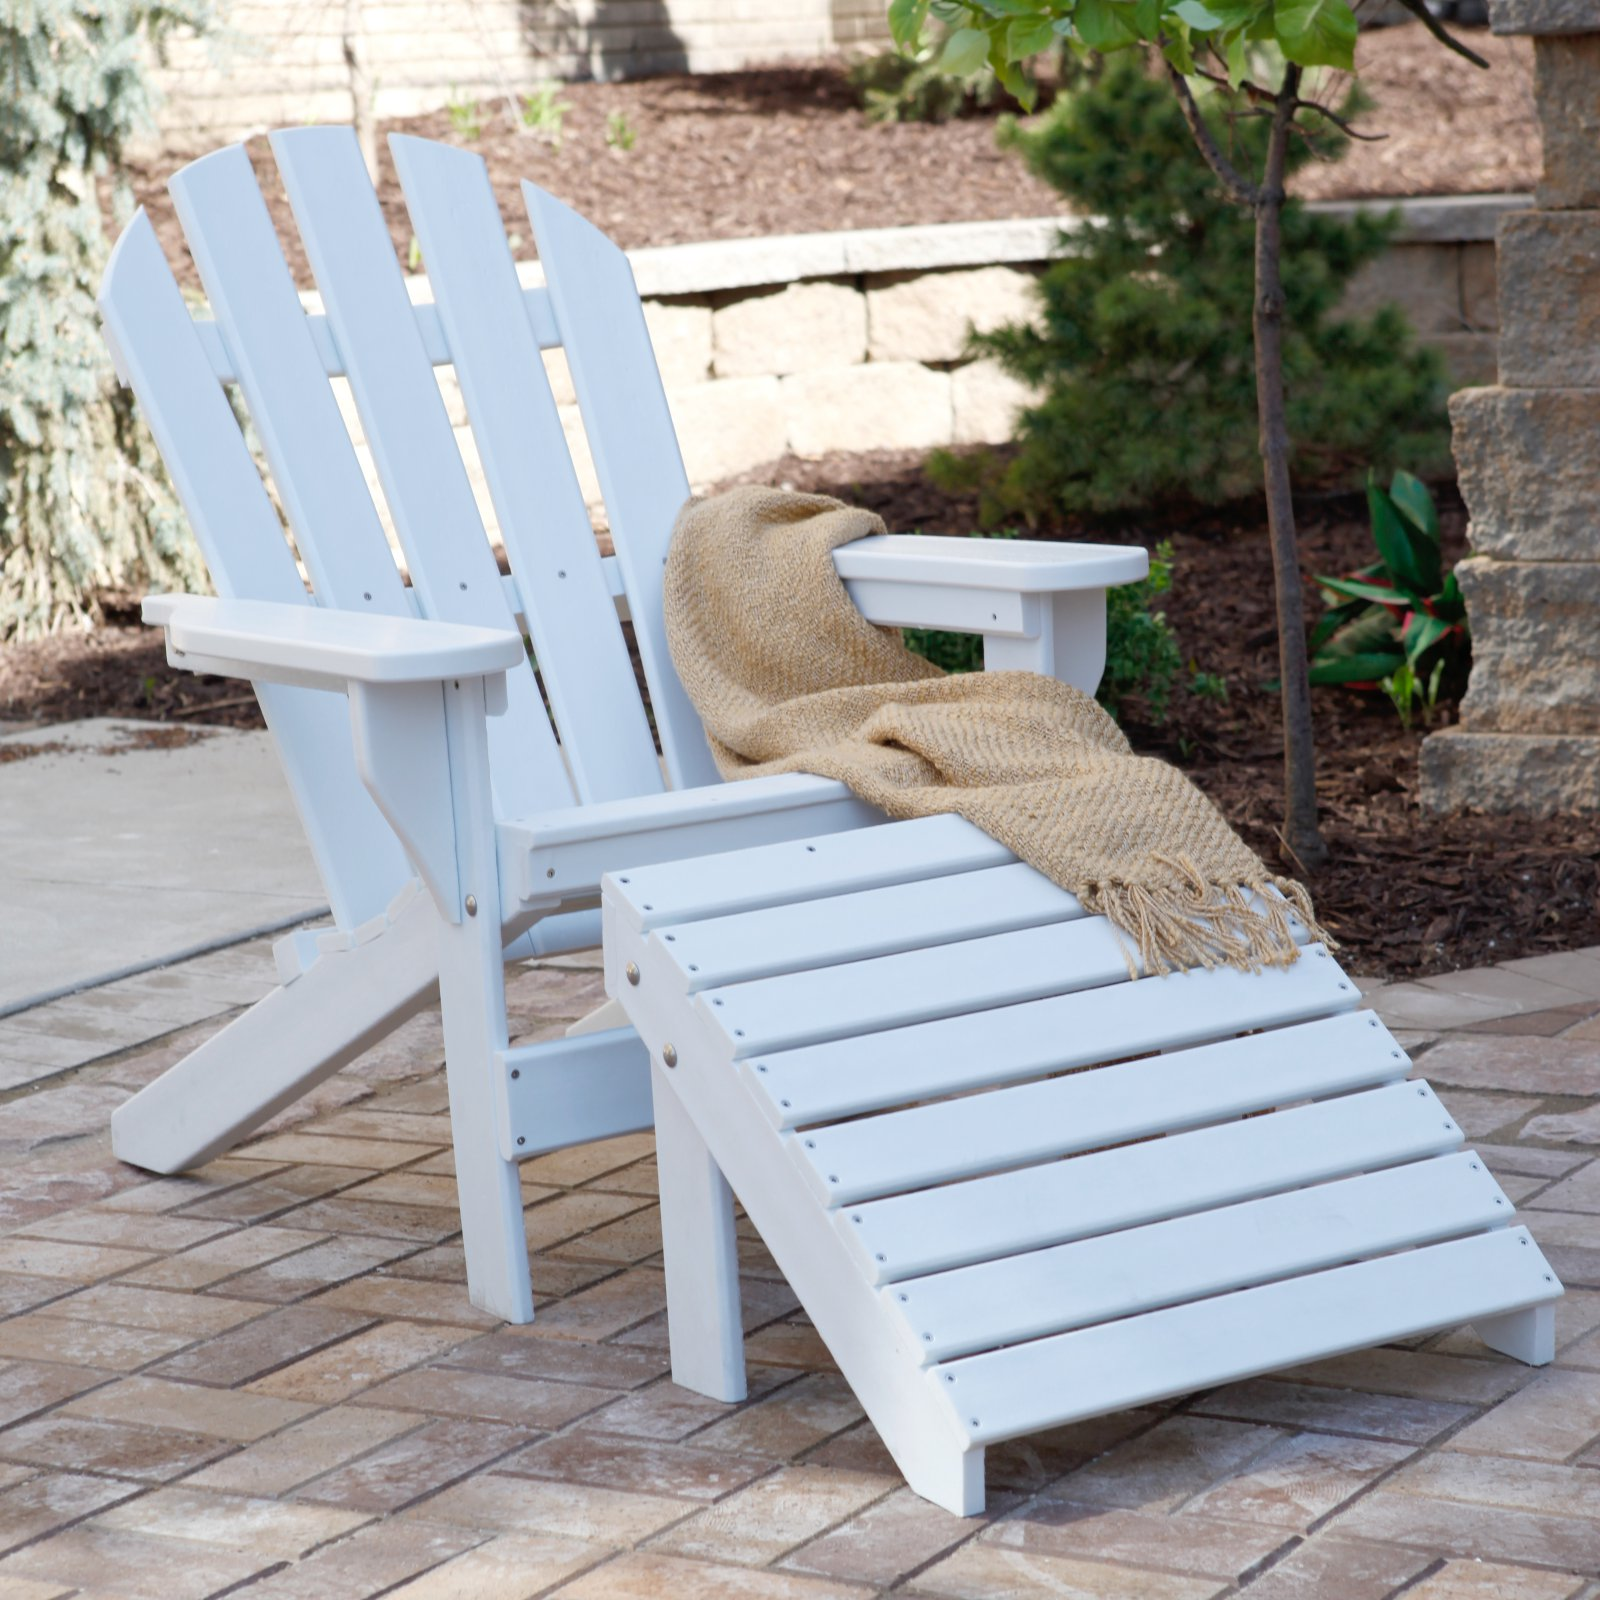 Jayhawk Plastics Recycled Plastic Cape Cod Adirondack Chair And Ottoman Set